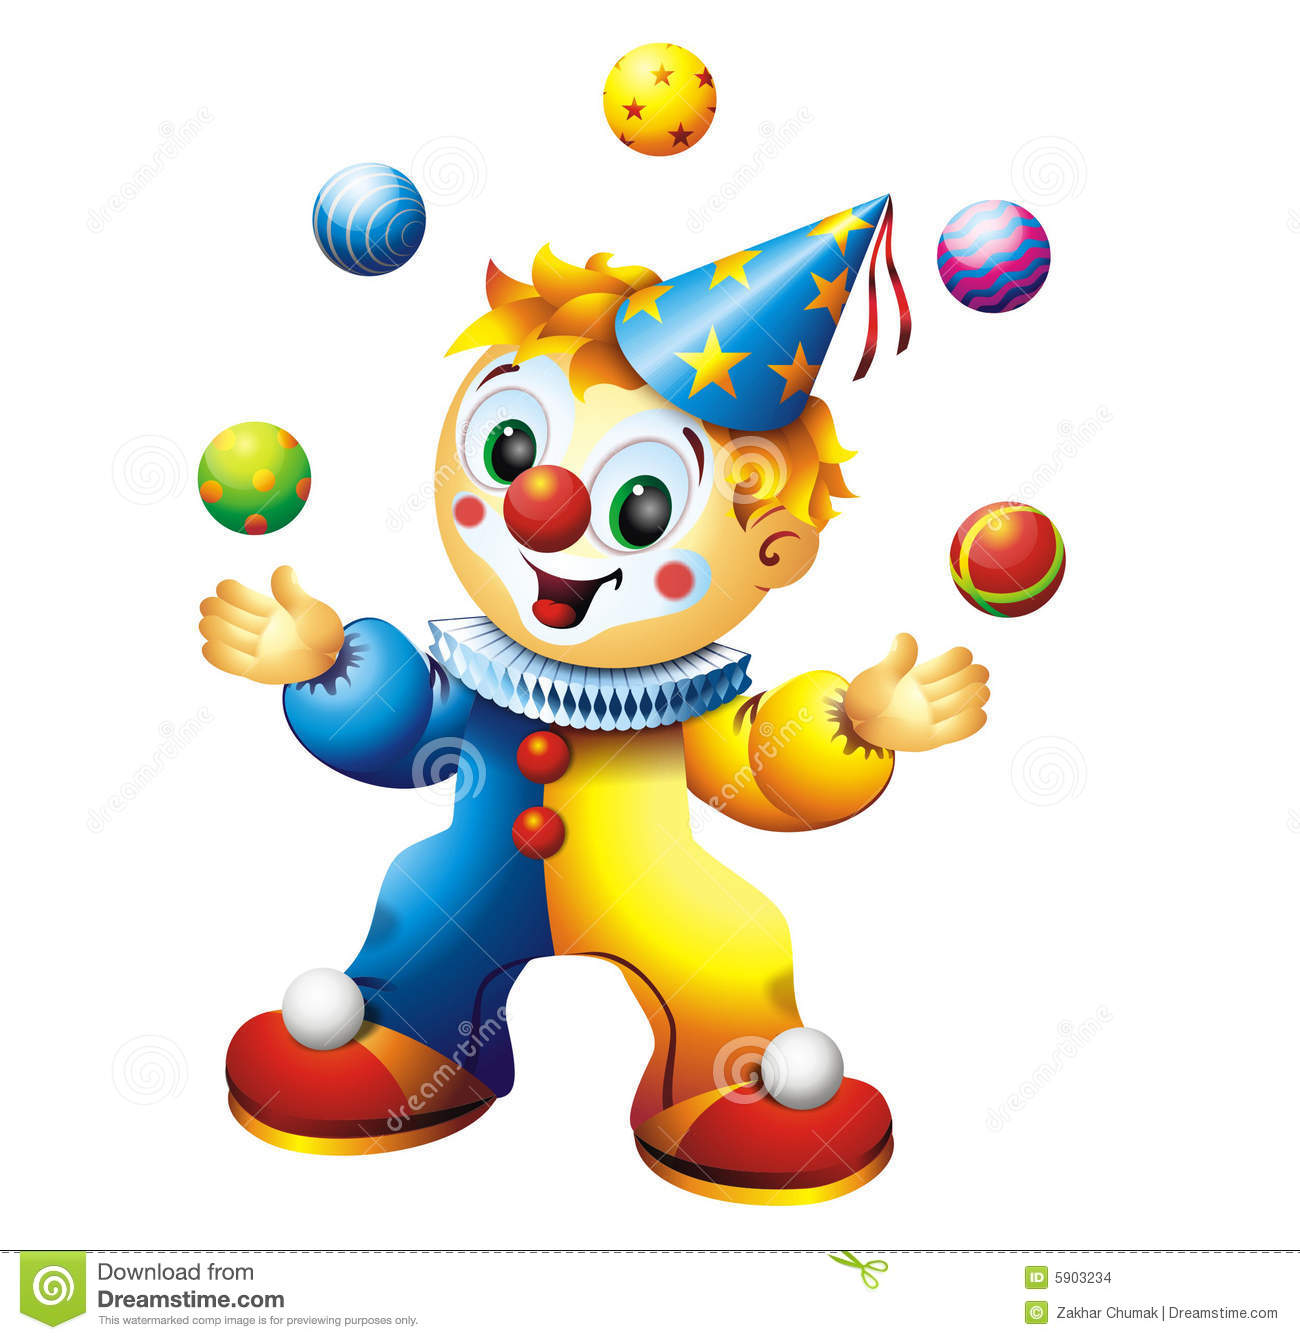 Circus Juggling Clown Cartoon.